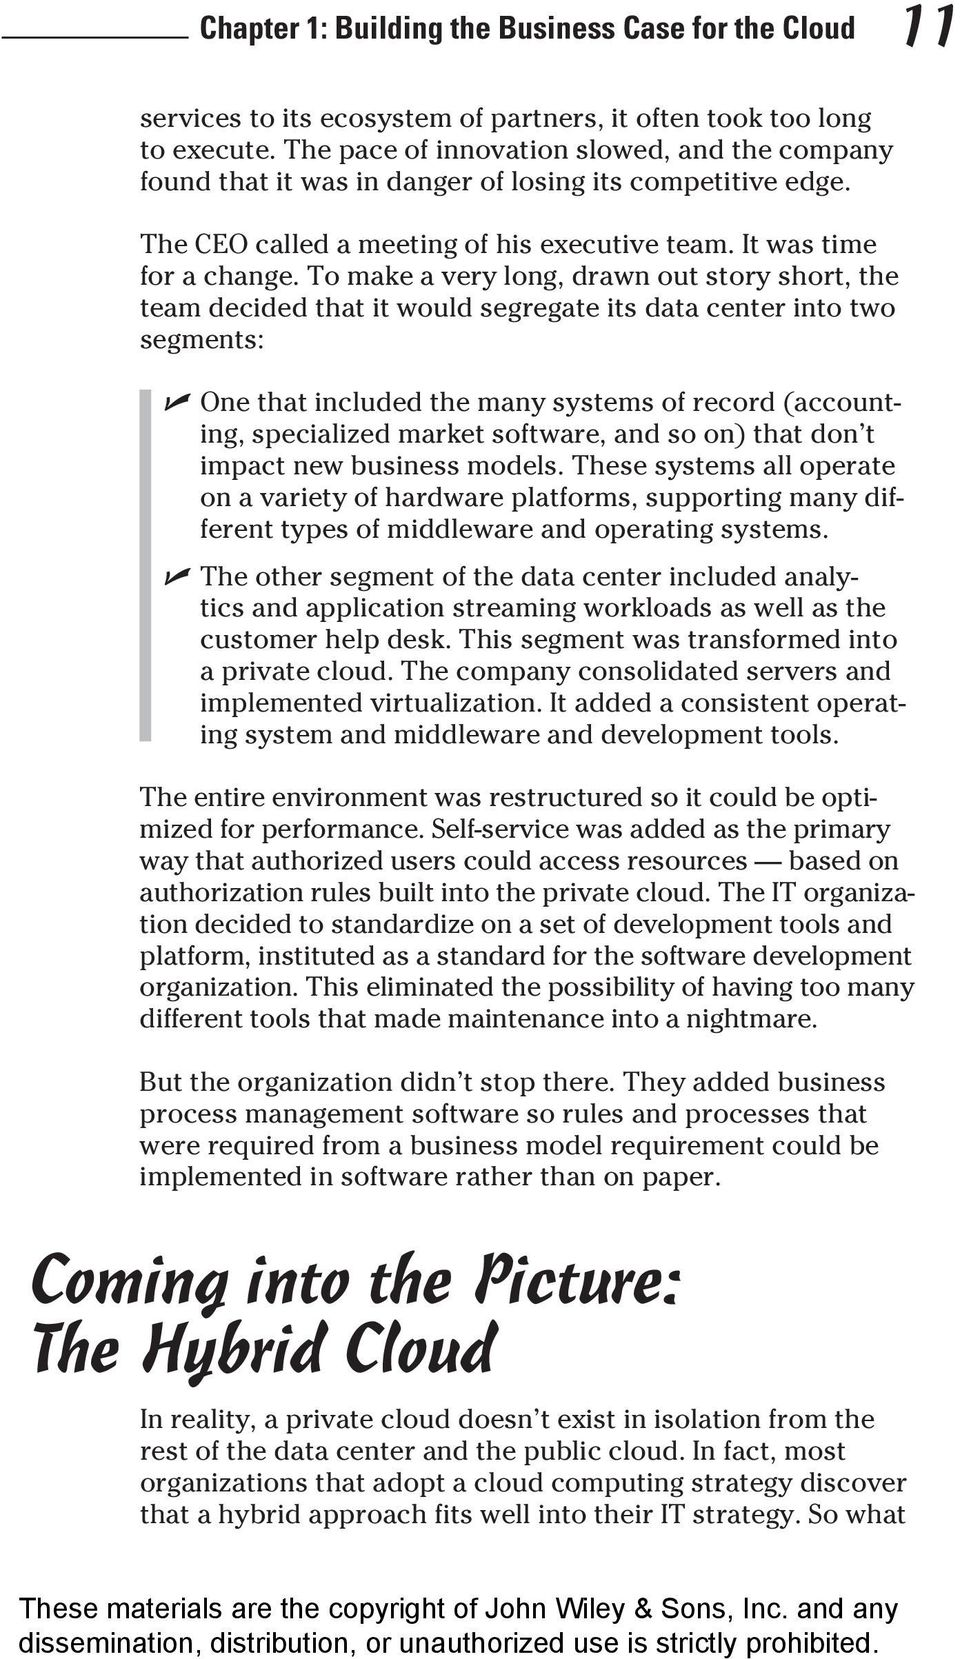 To make a very long, drawn out story short, the team decided that it would segregate its data center into two segments: One that included the many systems of record (accounting, specialized market